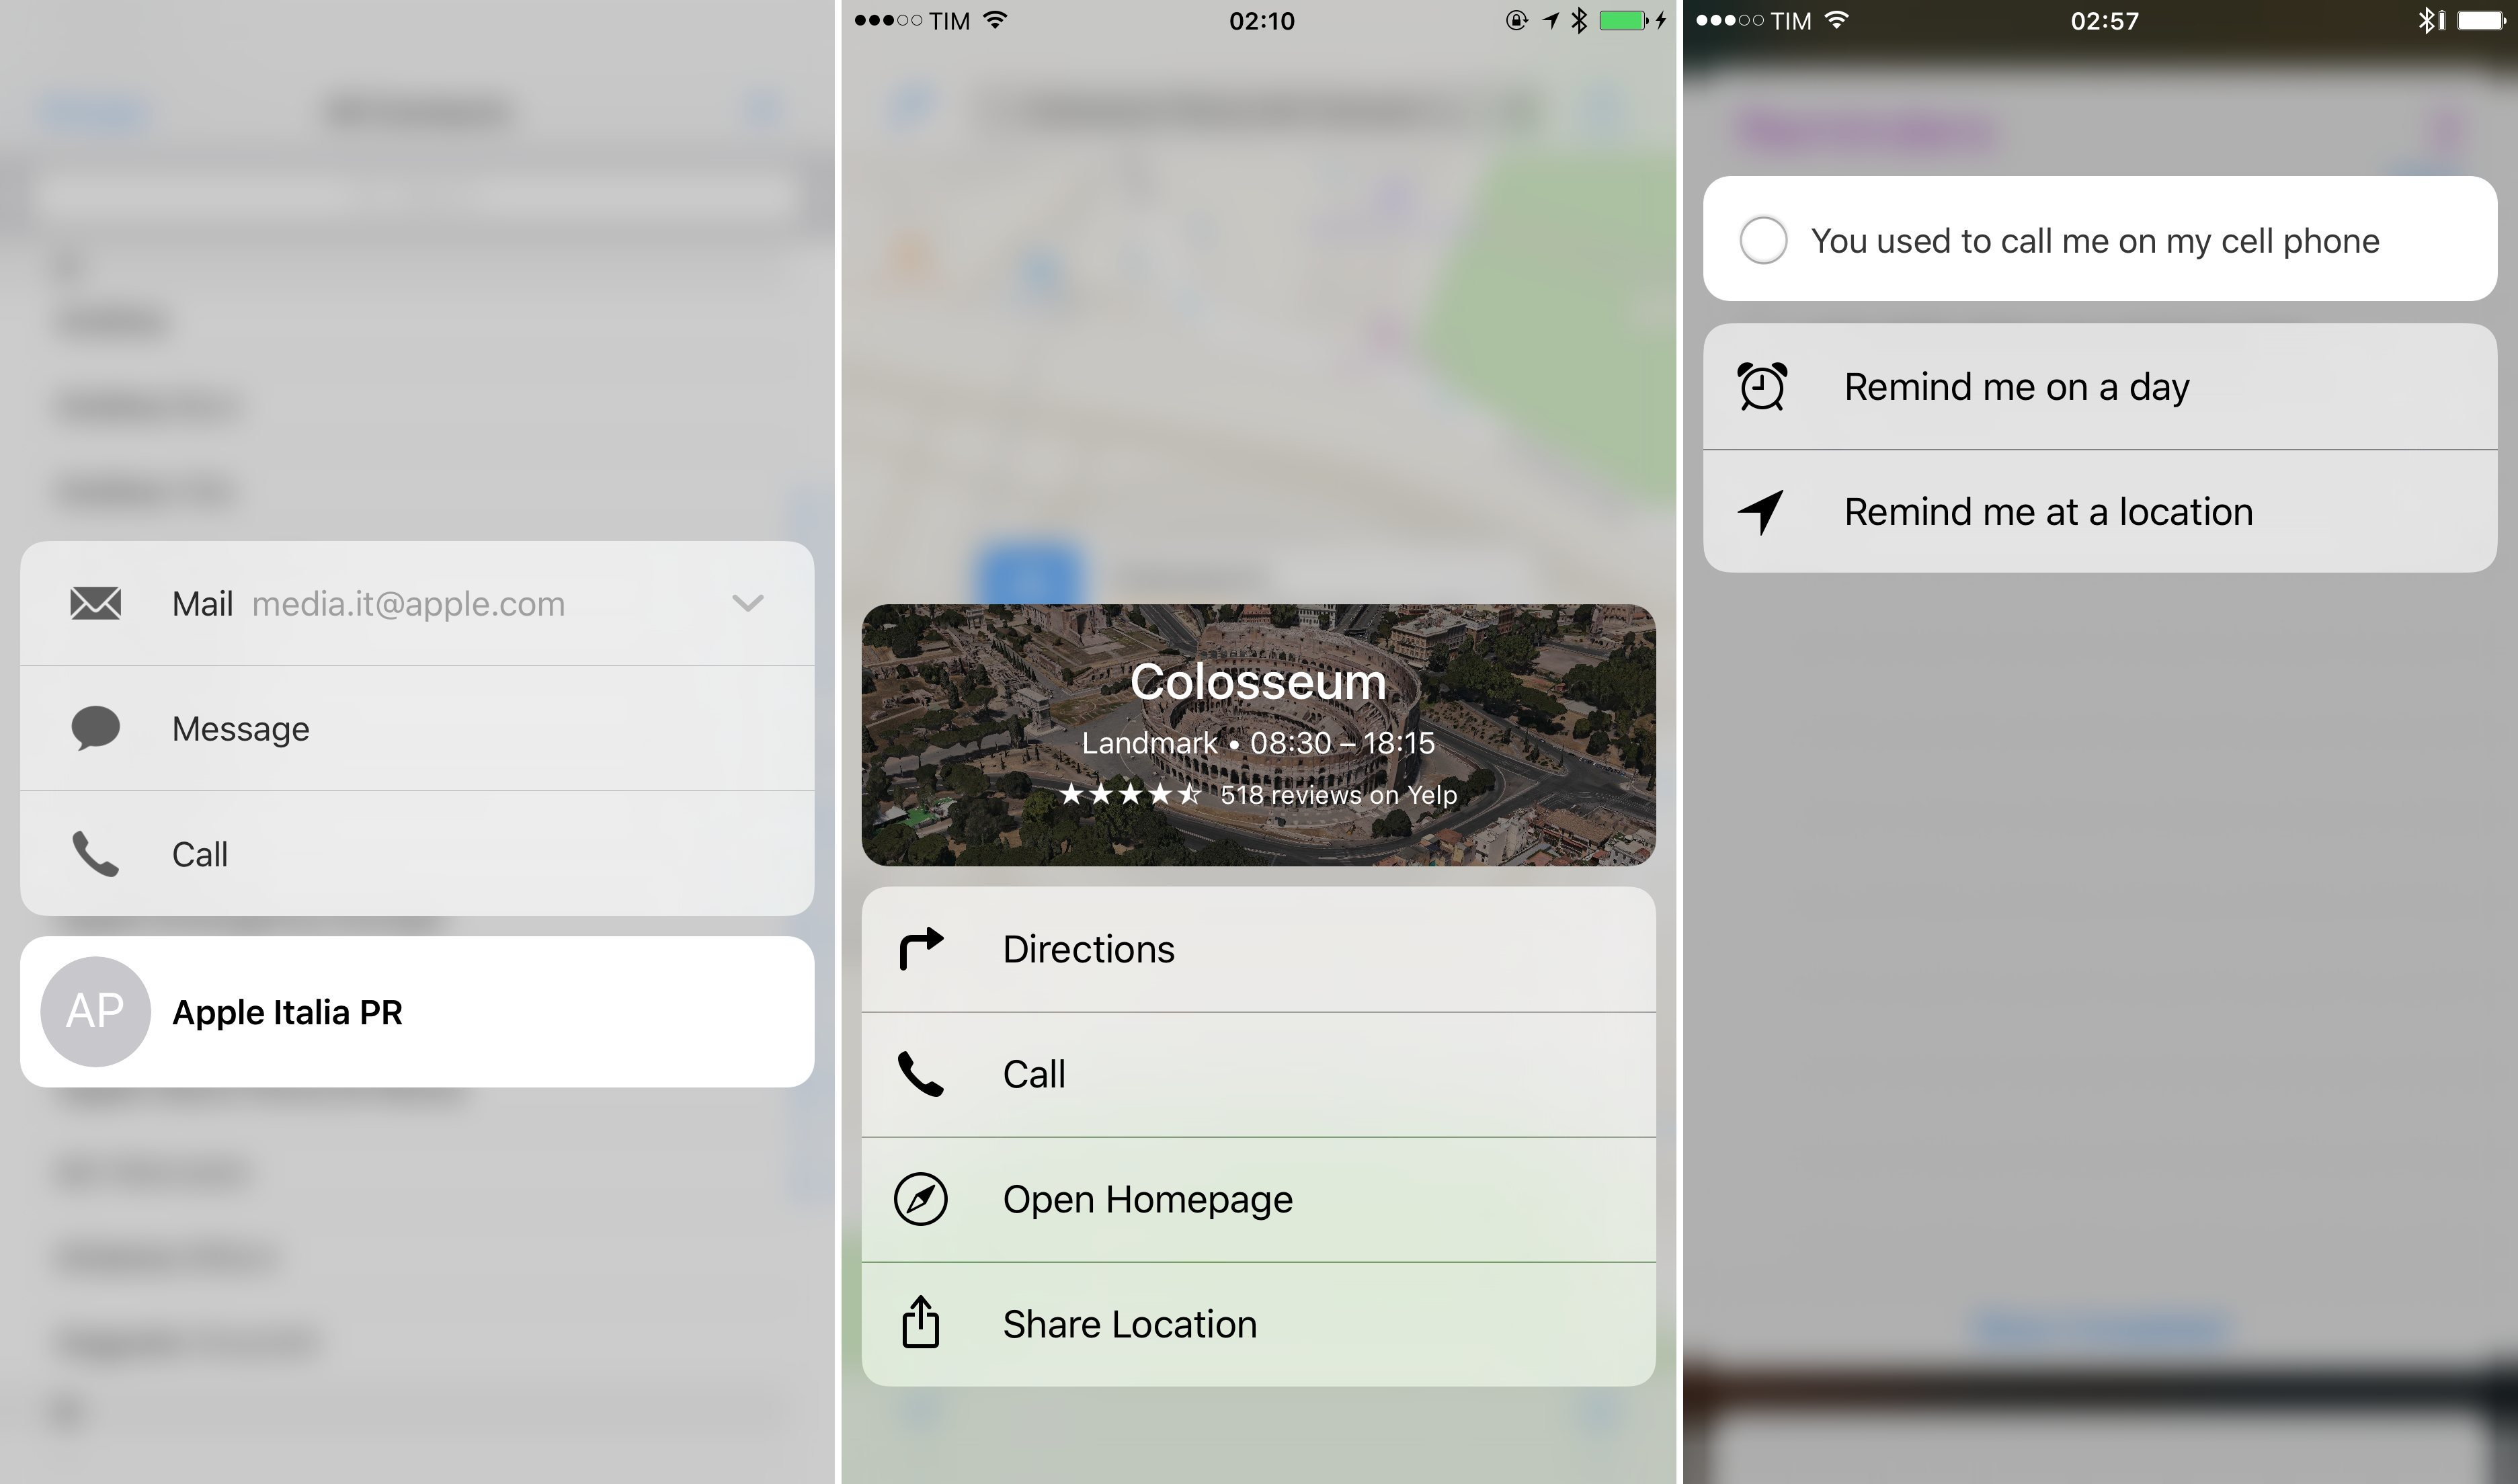 Custom menus in Contacts, Maps, and Reminders.